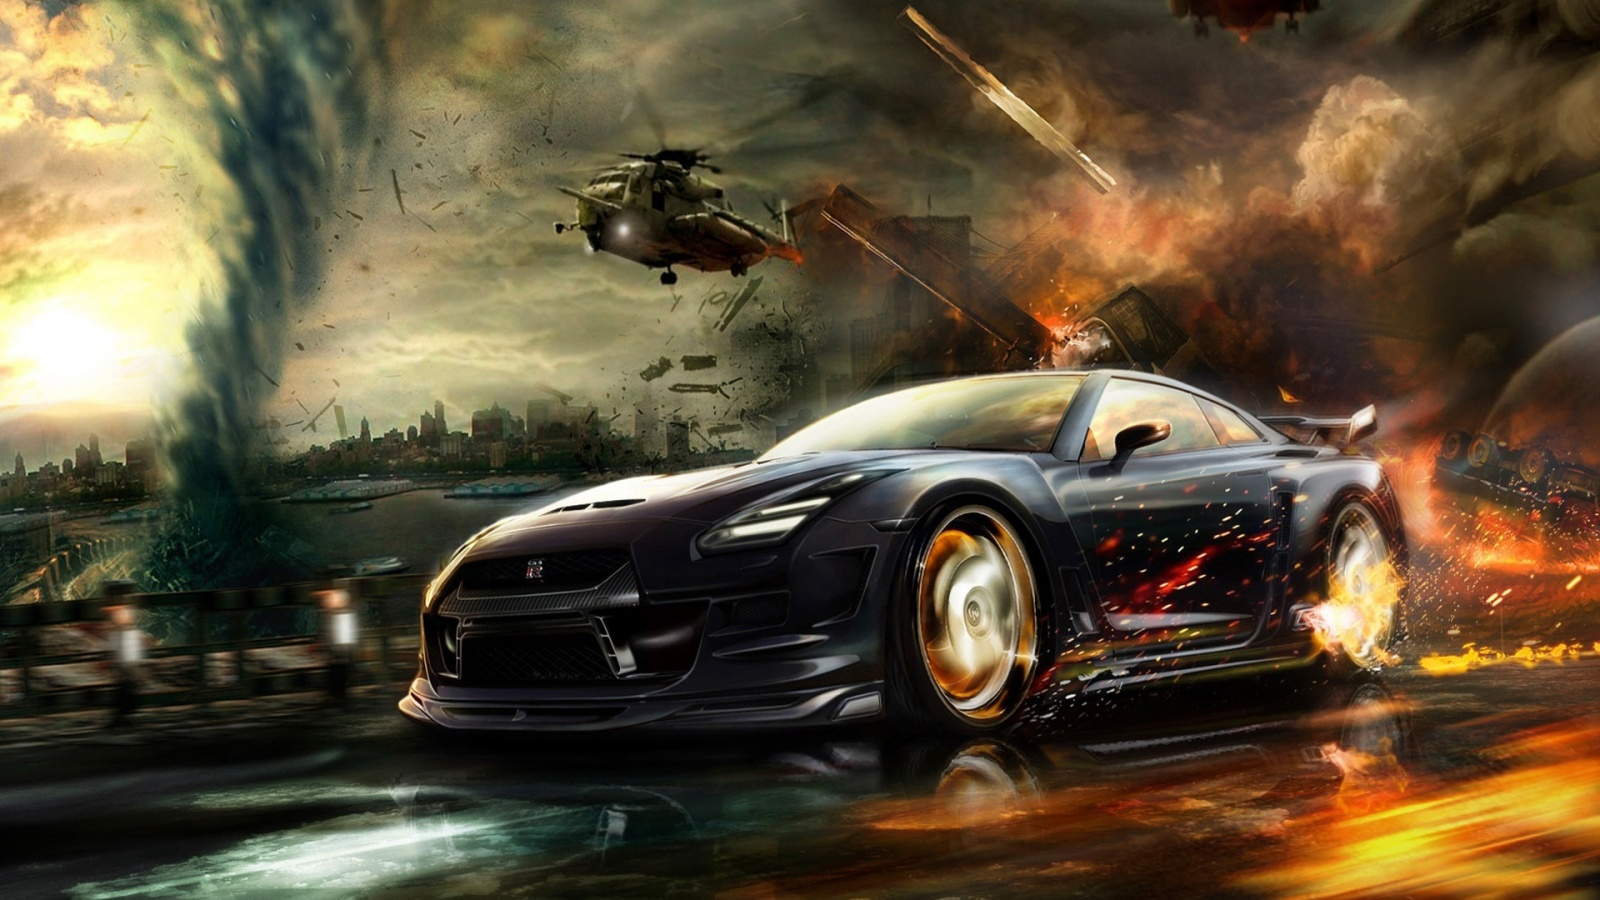 Desktop Wallpaper Car Super Car Top Desktop No1 1600x900